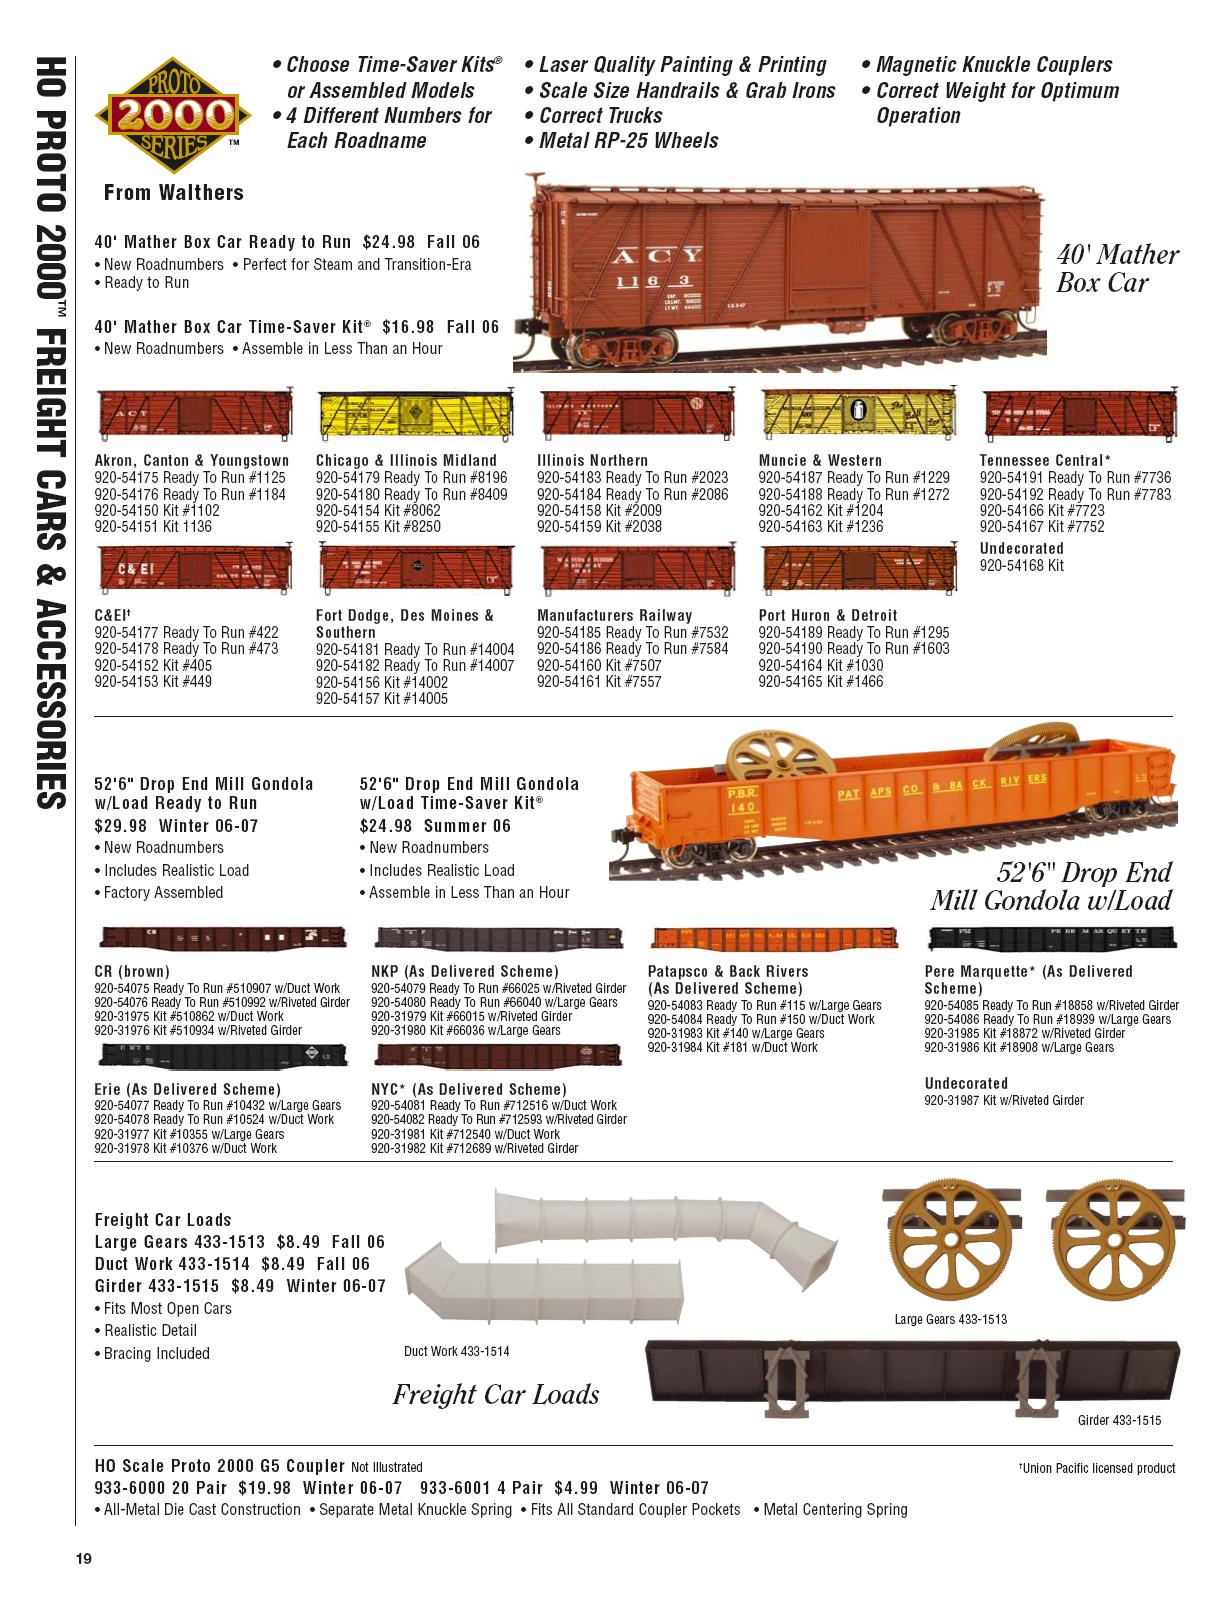 Walthers 2006 Cataloge Passenger page 11